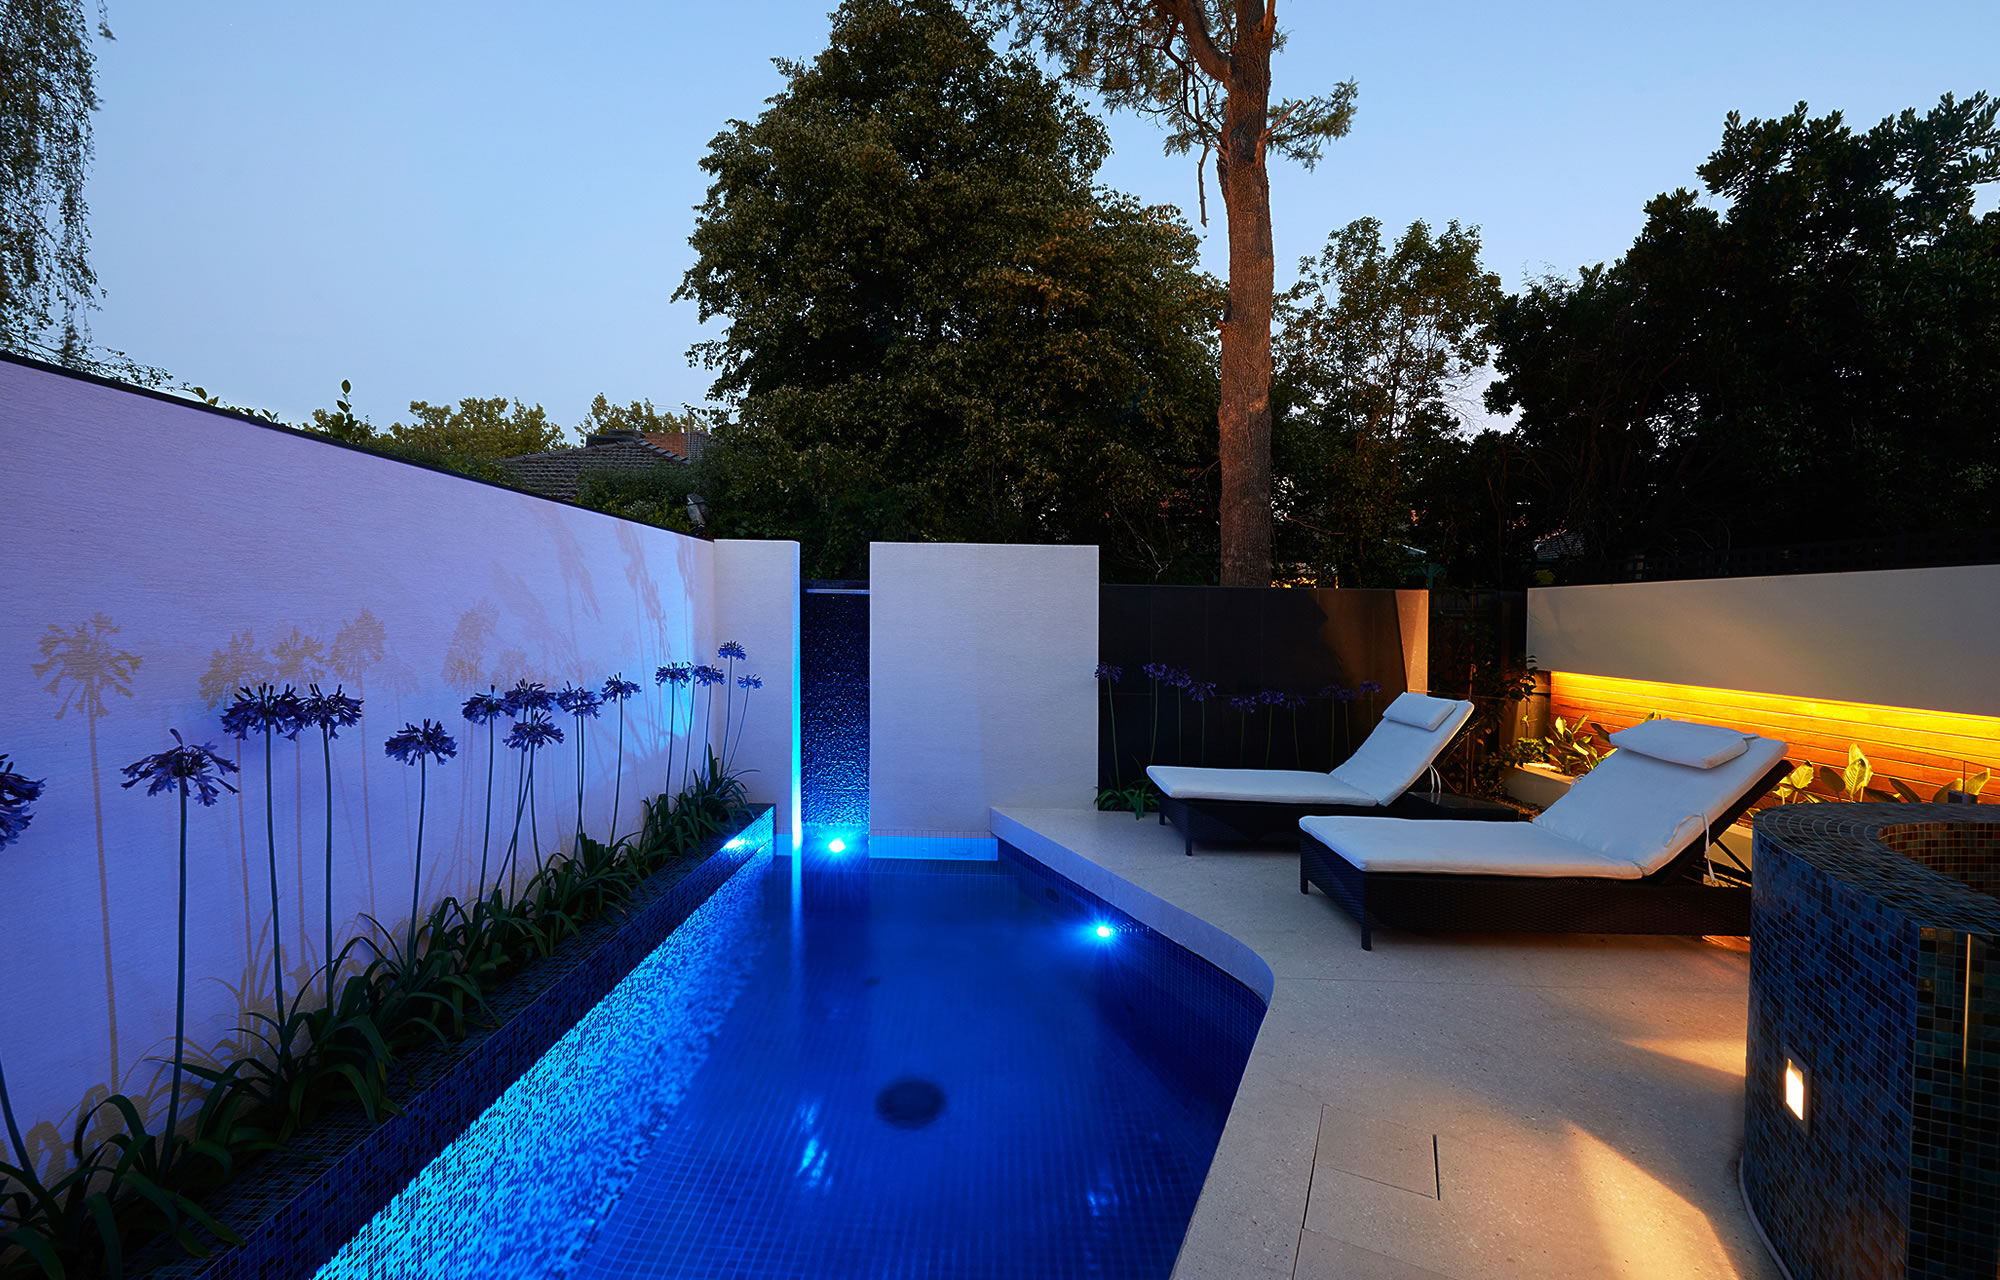 OFTB Melbourne U2013 Swimming Pool Builders, Landscape Architecture U0026 Design,  Custom, Concrete, Construction, Spas, Plunge Pools, Lap Pools, Infinity  Edge, ...